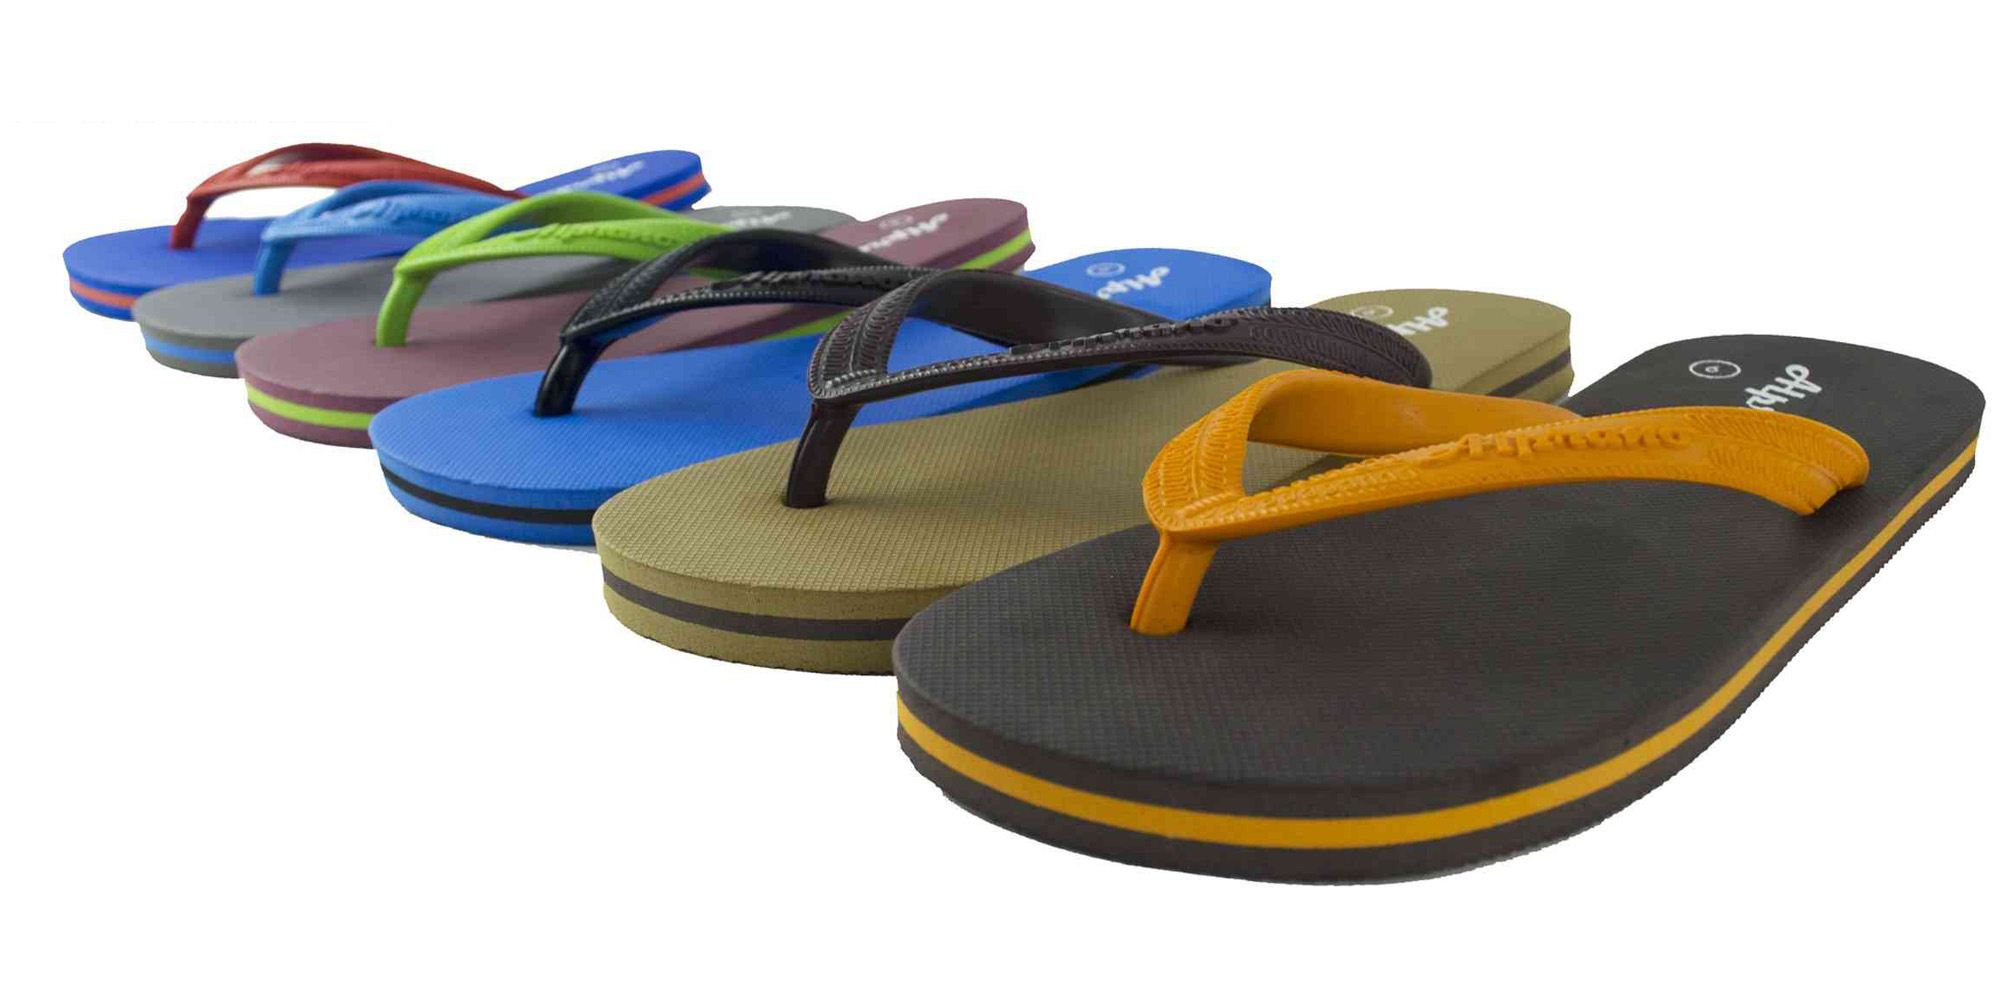 JN-APL06 (UK5) Alprano Slipper